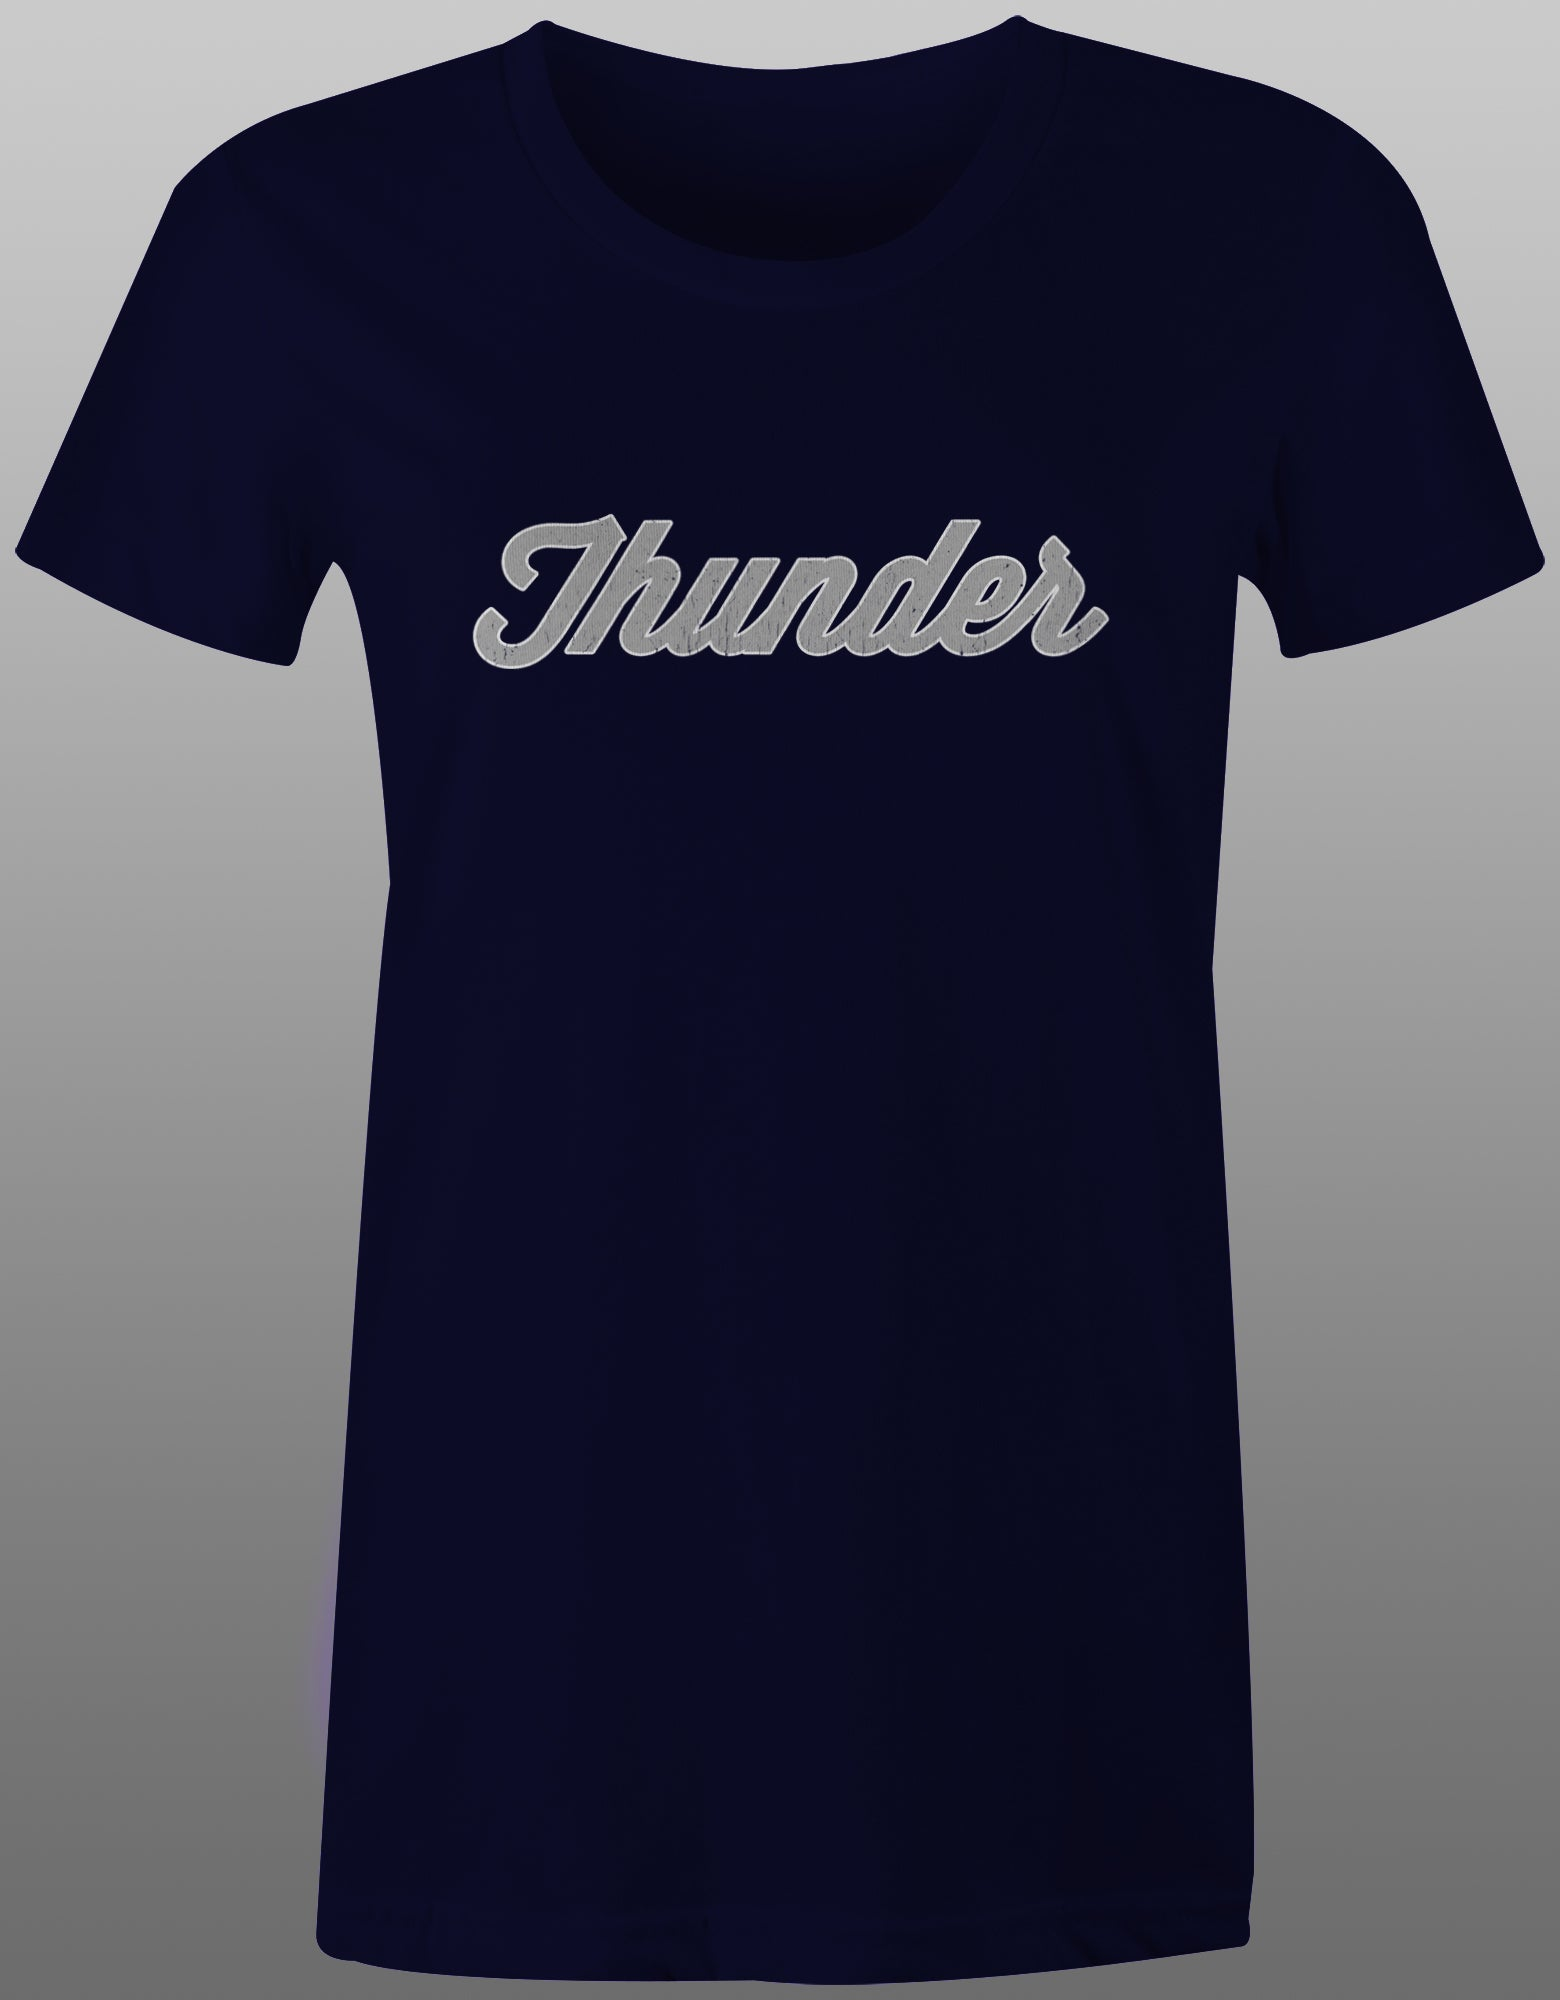 2013 Logo Tee - Ladies